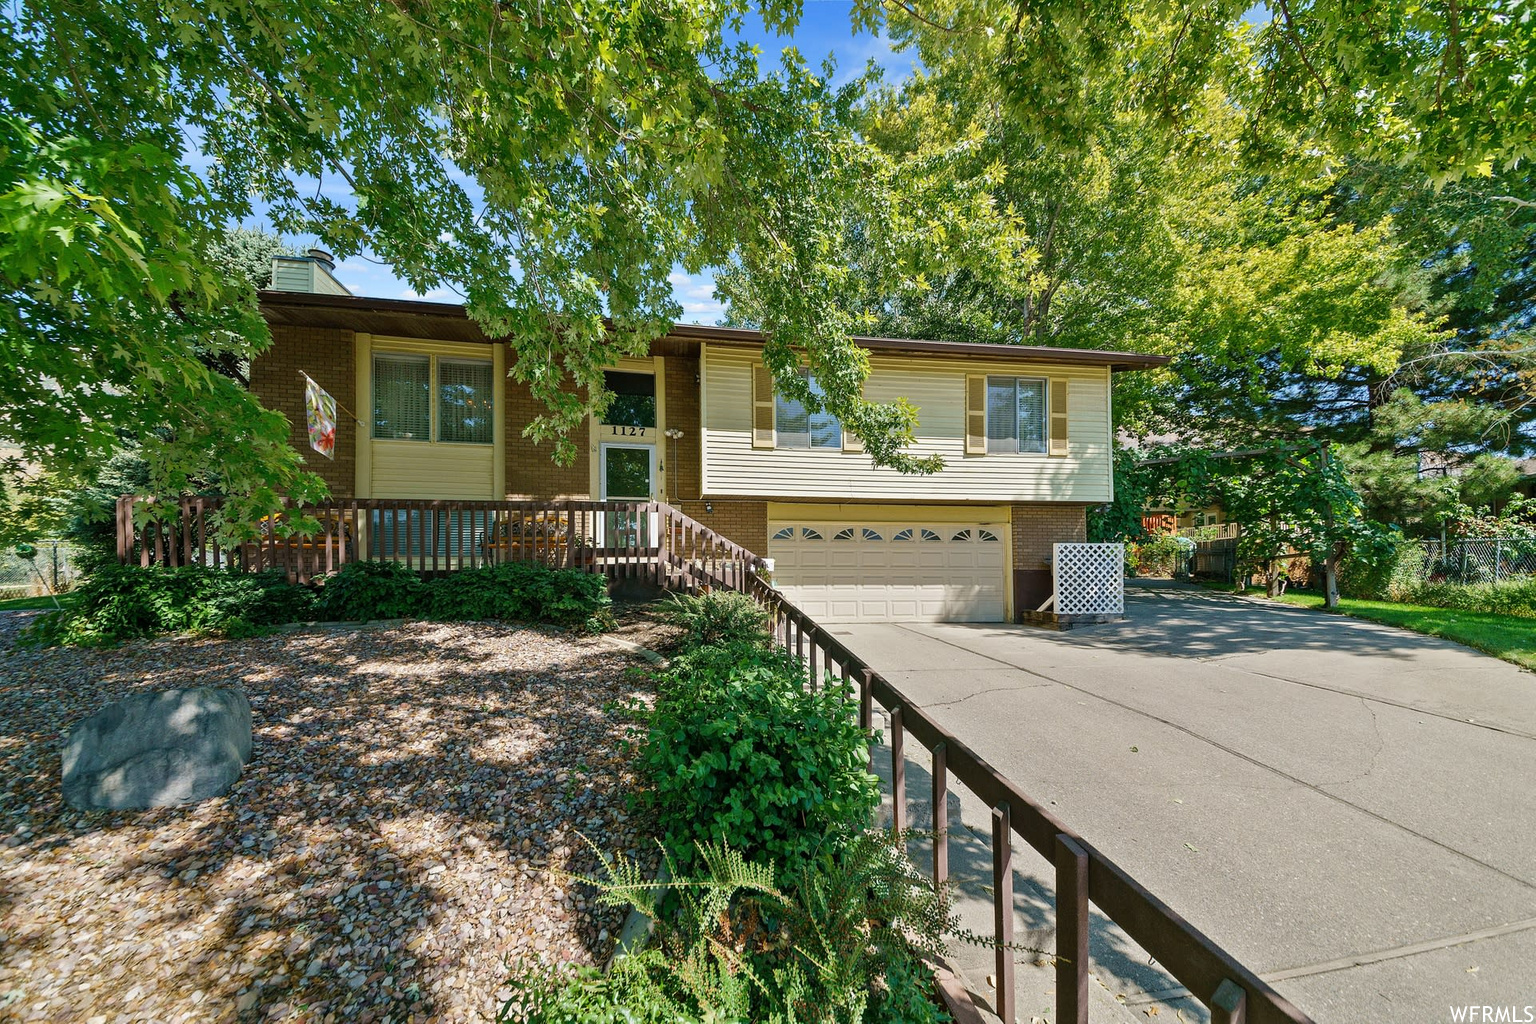 1127 E 30 S, Pleasant Grove UT 84062